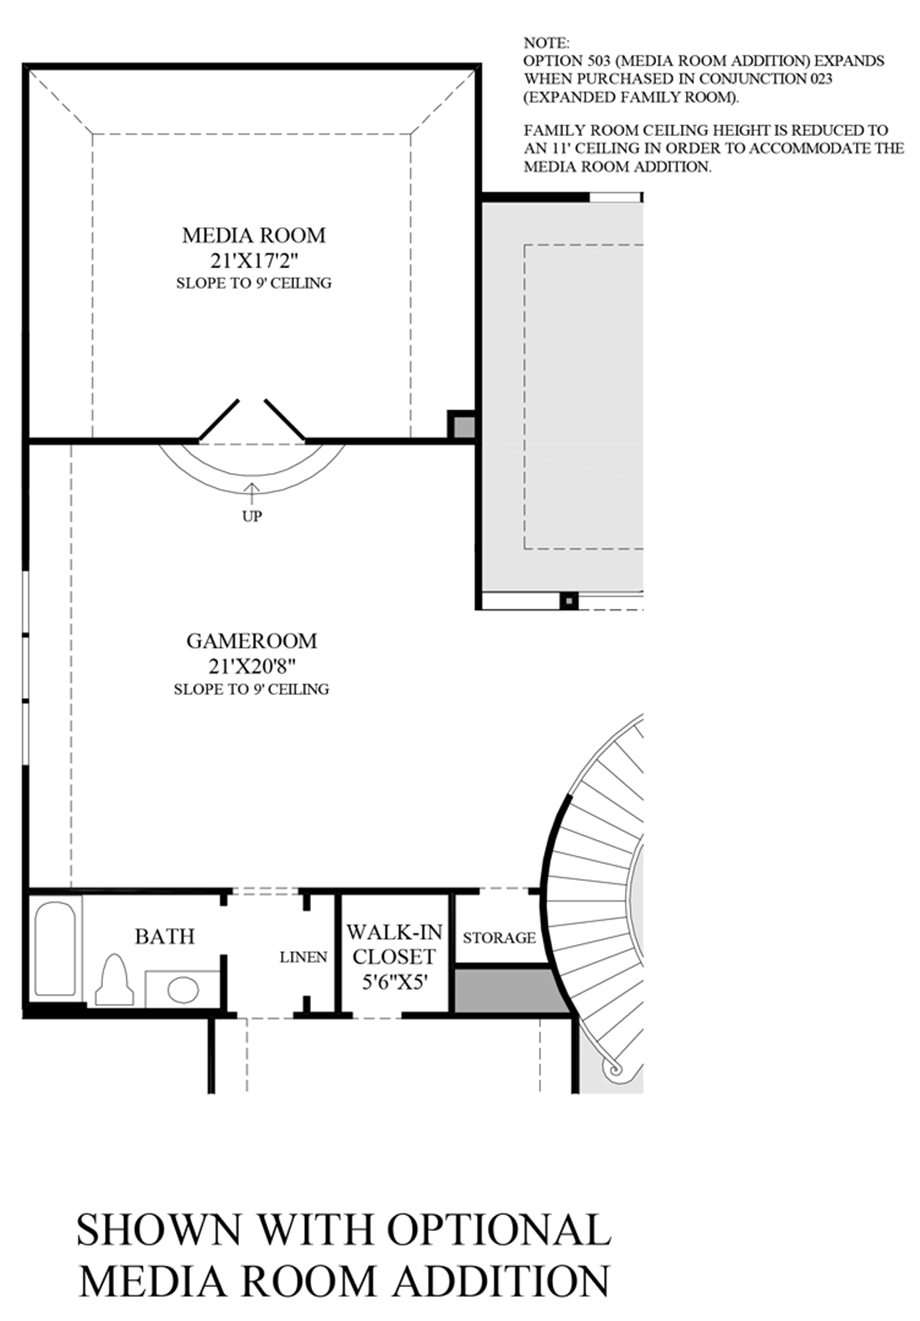 Optional Media Room Floor Plan